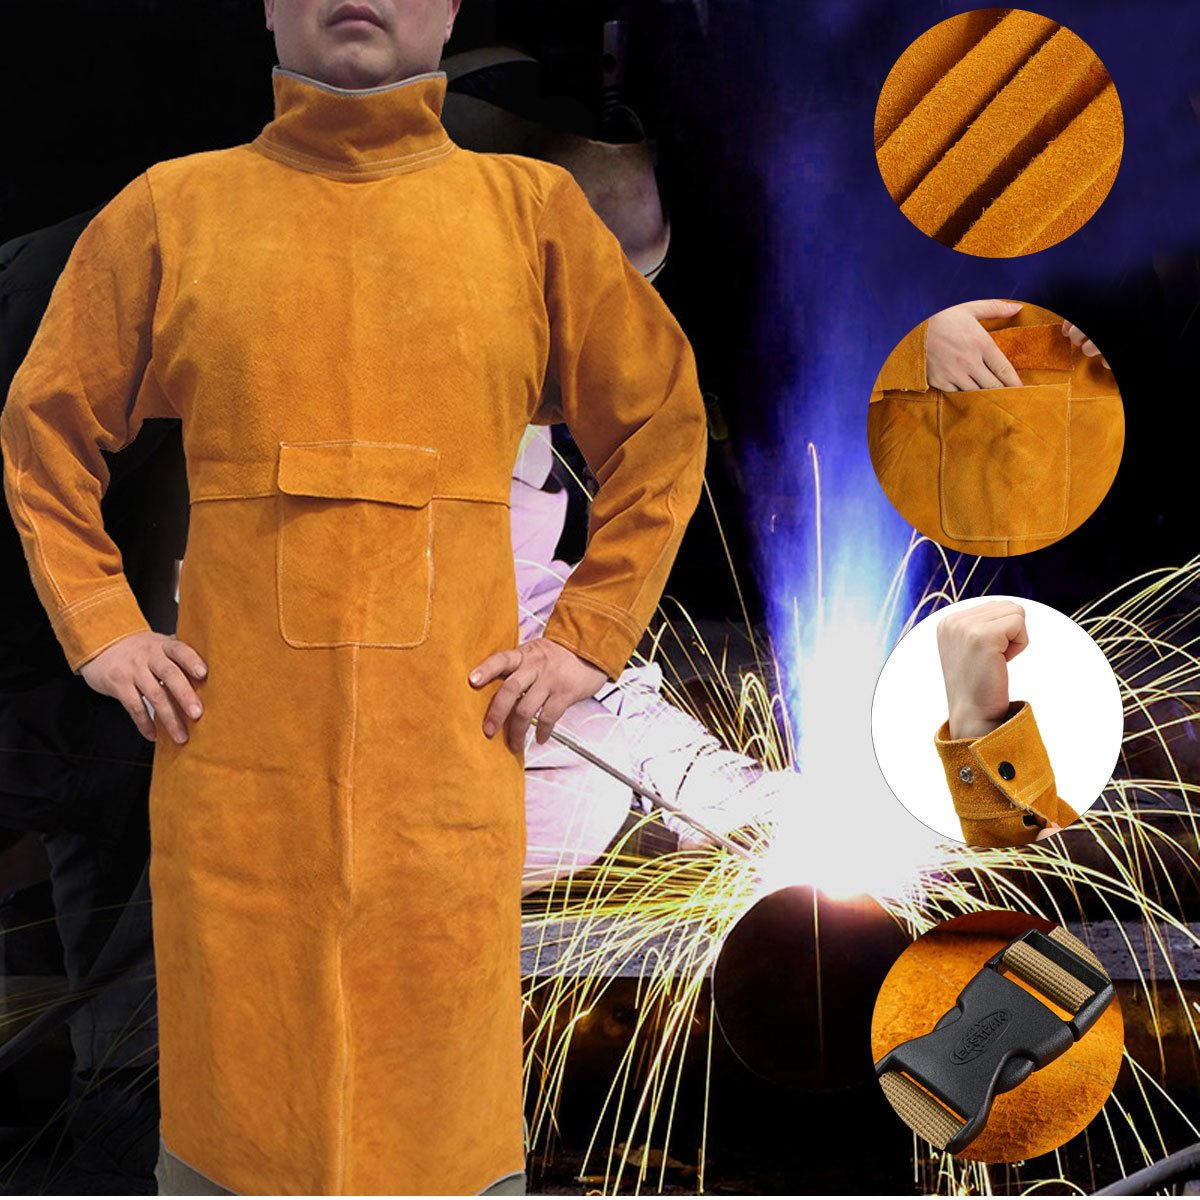 Durable Leather Welding Long Coat Apron Protective Clothing Apparel Suit by SP603